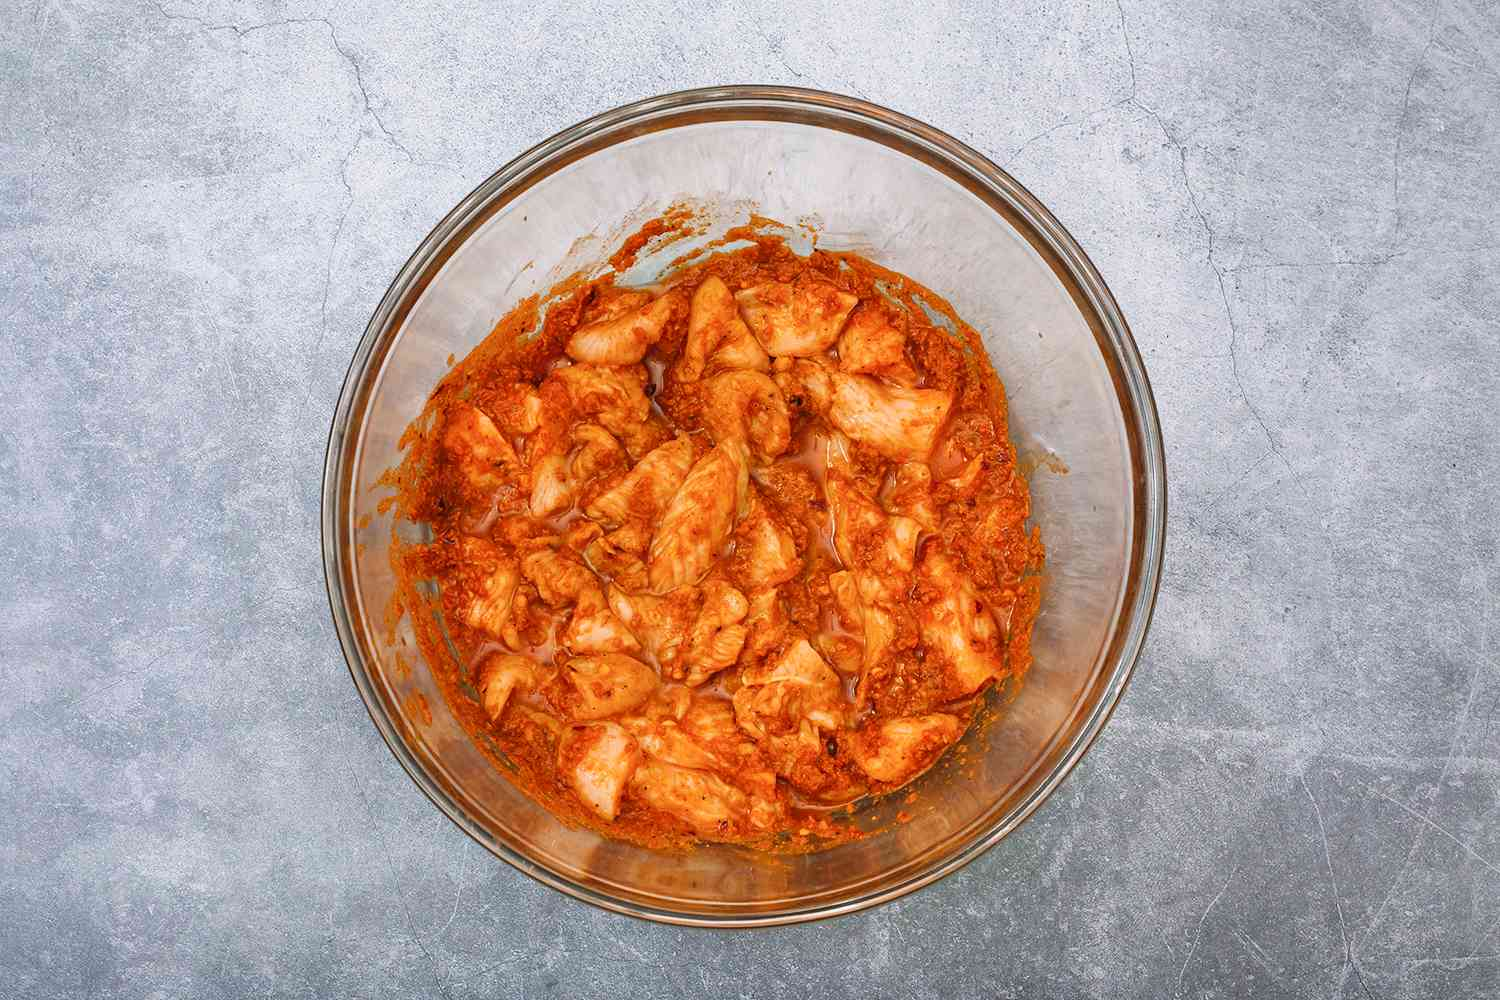 Place the paste into a glass bowl, add the vinegar and the chicken